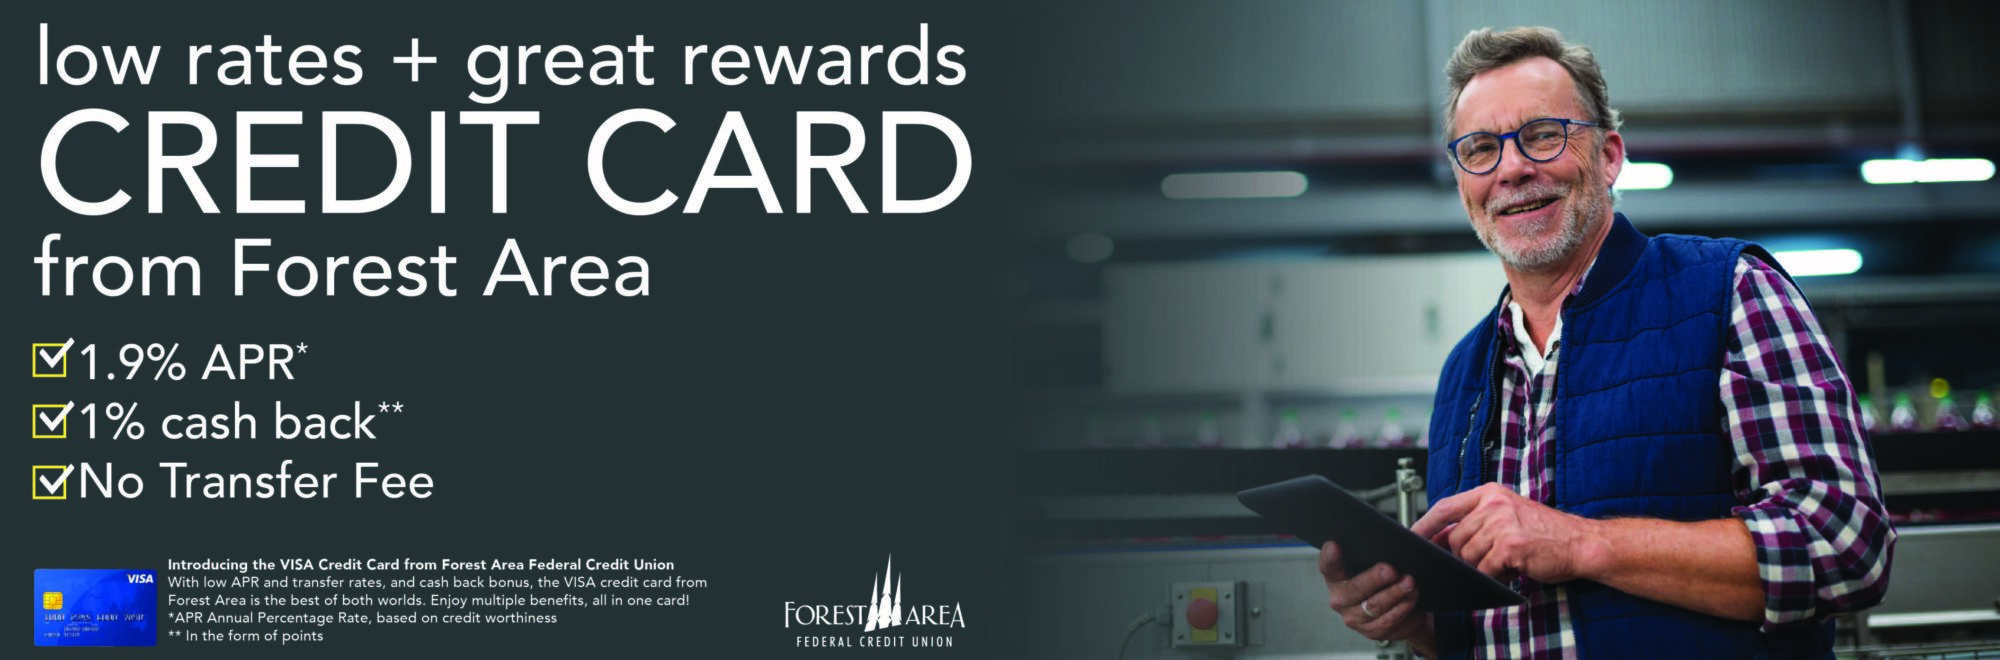 Learn more about our VISA Credit Card. It comes with great rates and rewards.